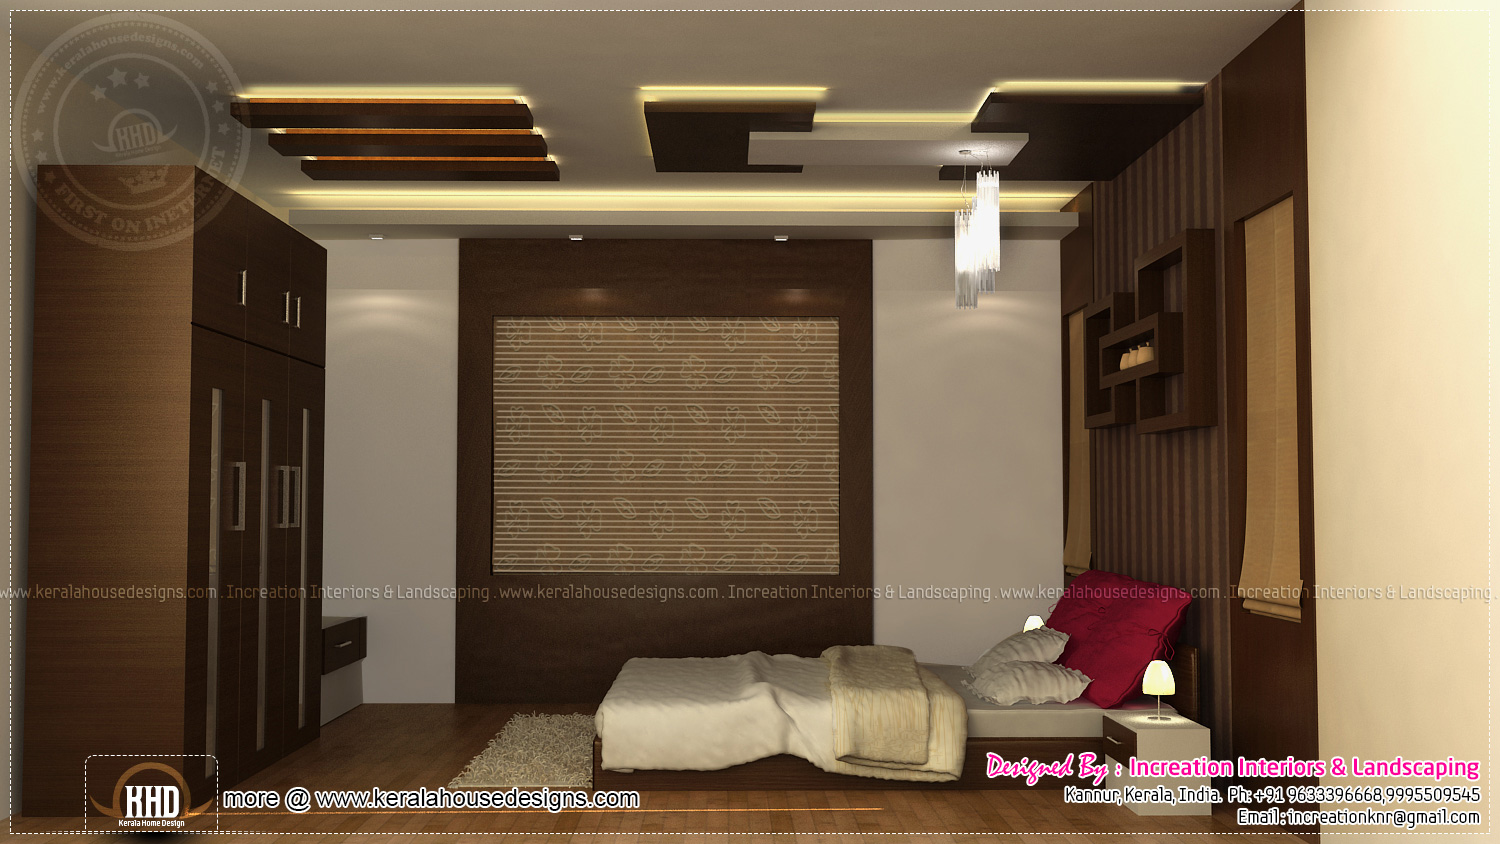 Interior designs by increation kannur kerala kerala for New room interior design